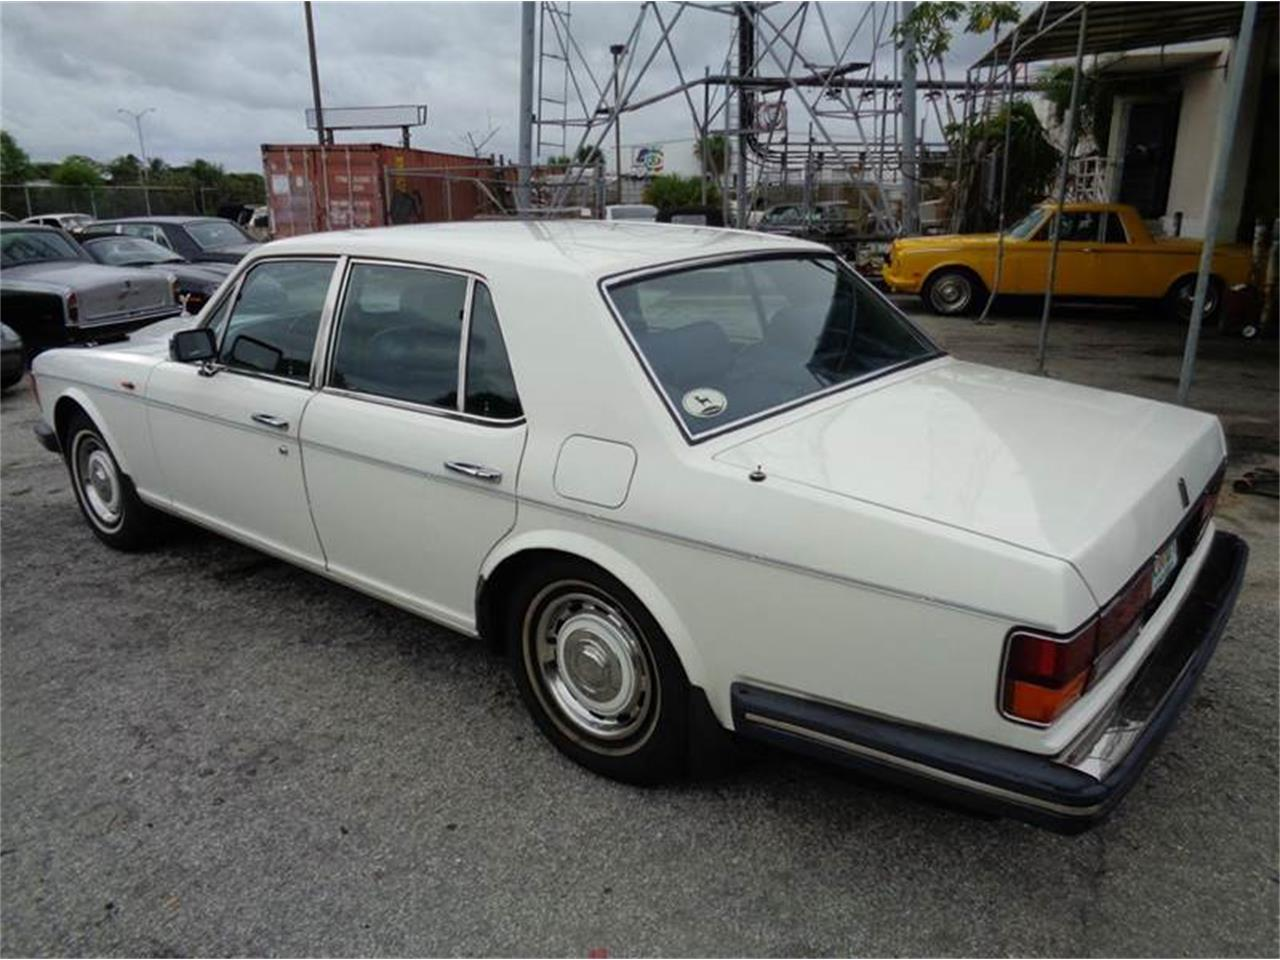 Large Picture of 1987 Rolls-Royce Silver Spirit located in Florida - $19,950.00 Offered by Prestigious Euro Cars - FWHT